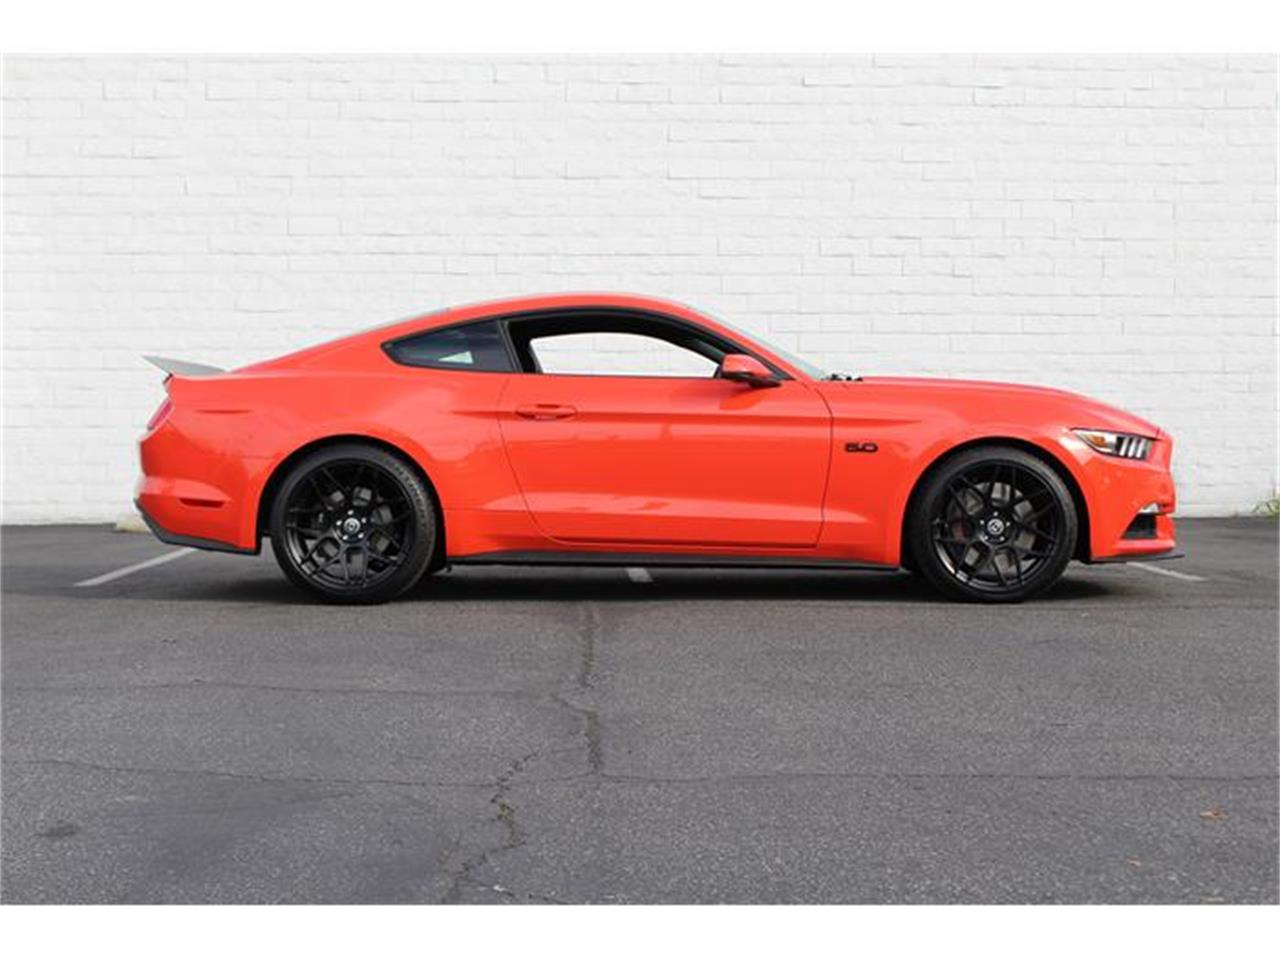 Large picture of 15 mustang gt iz50